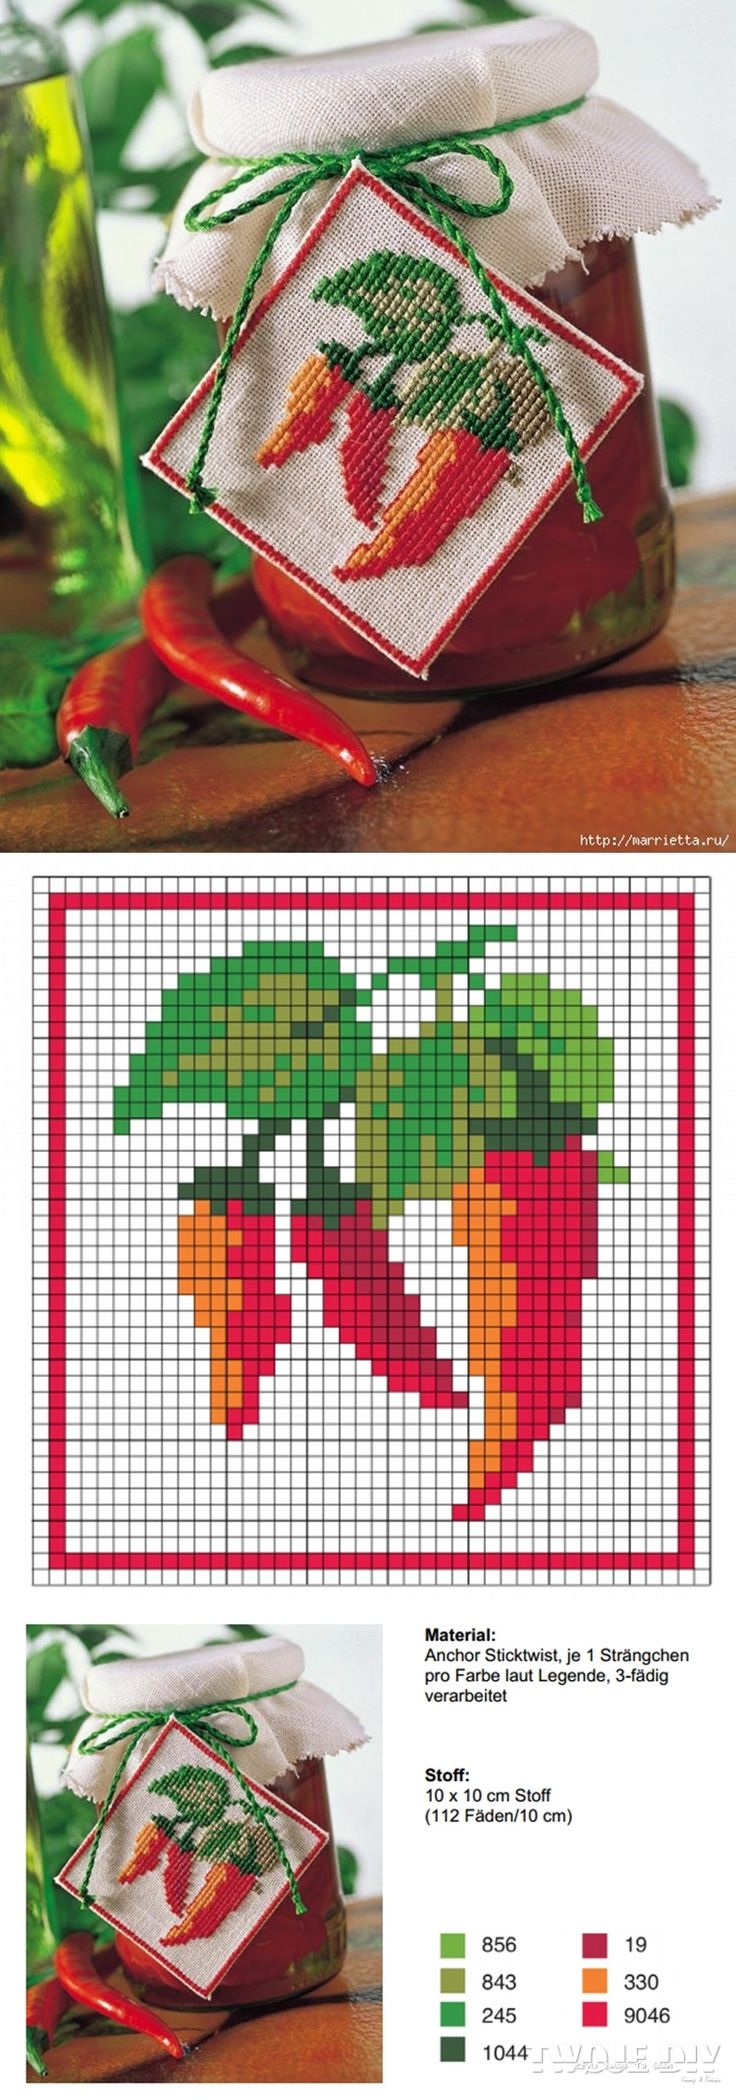 I hate the style here, but the general idea would work for Christmas gifts. A small cross-stitched ornament and canned item.